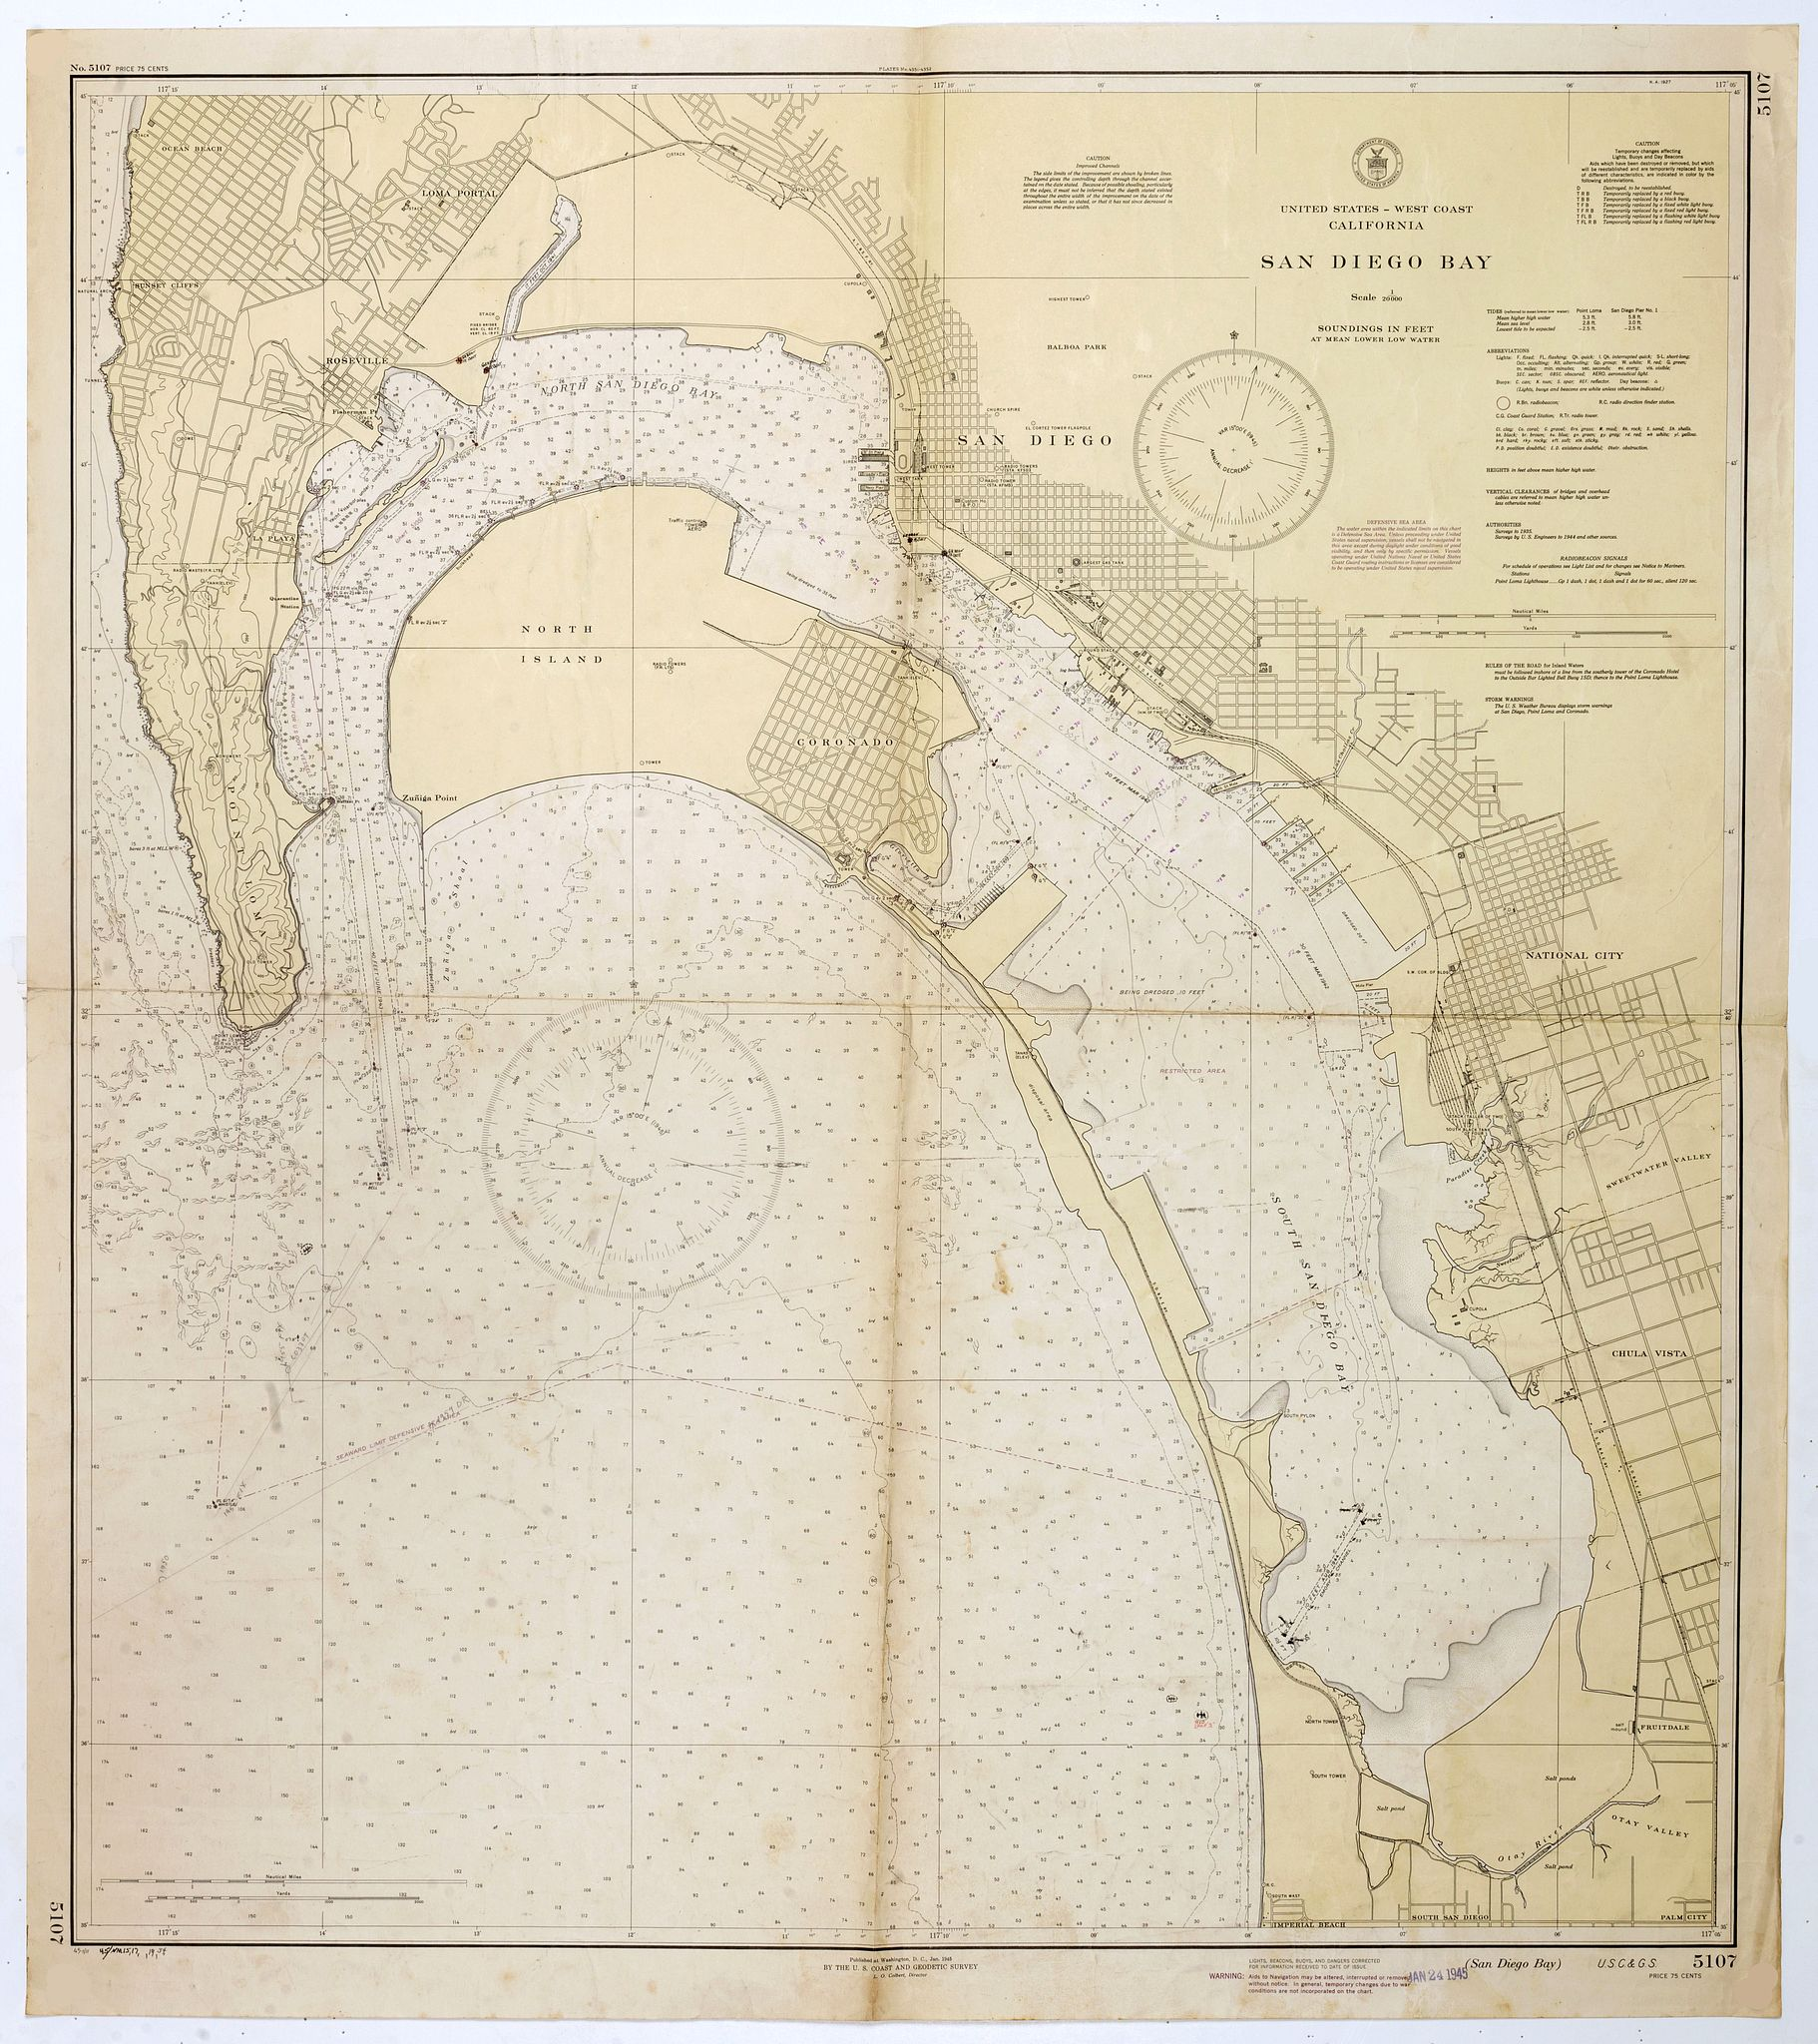 U.S. COAST AND GEODETIC SURVEY,  San Diego Bay. (Chart 5107), antique map, old maps